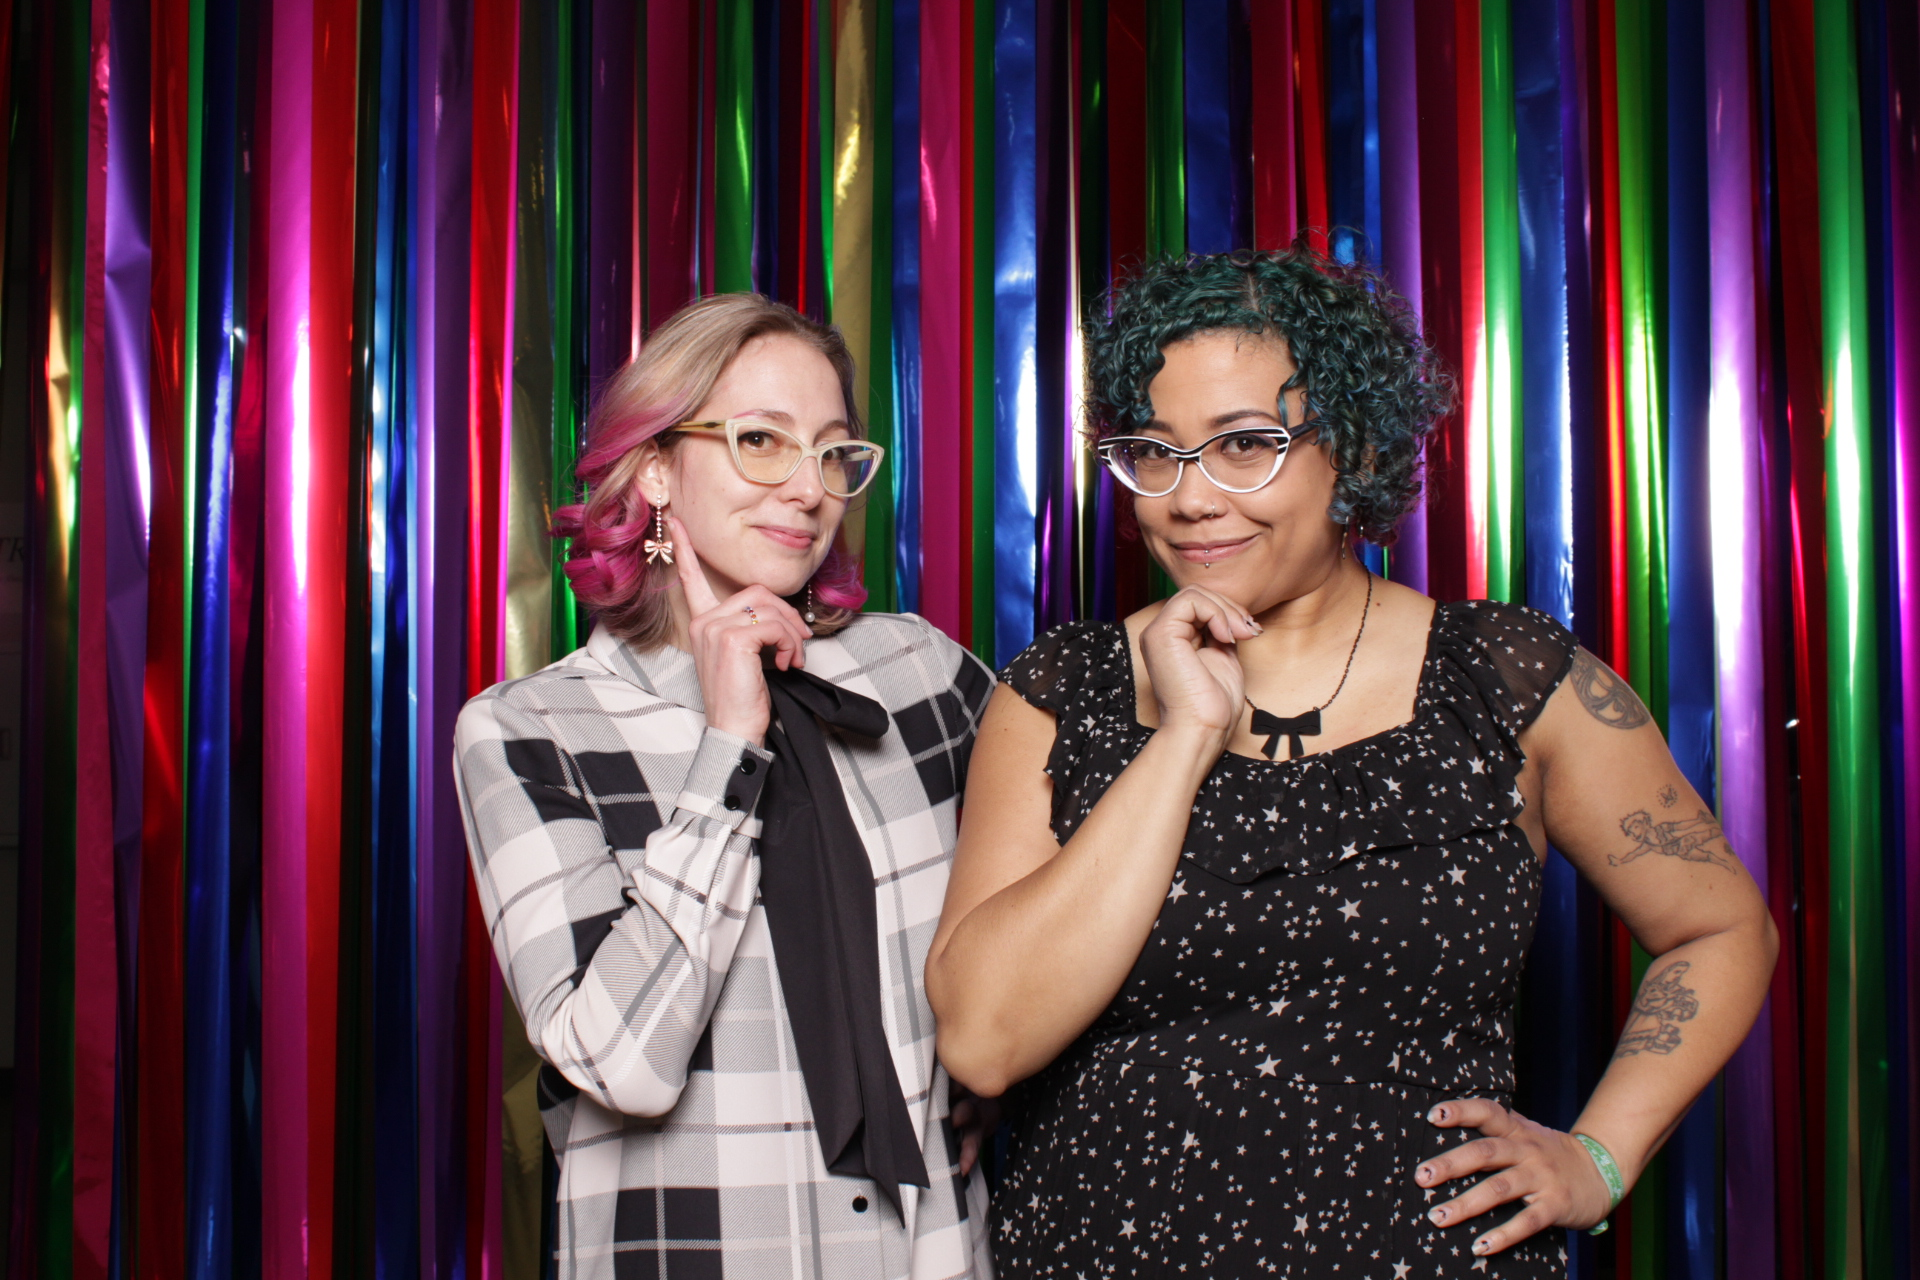 Minneapolis_corporate_Party_photo_booth_rental (2).jpg